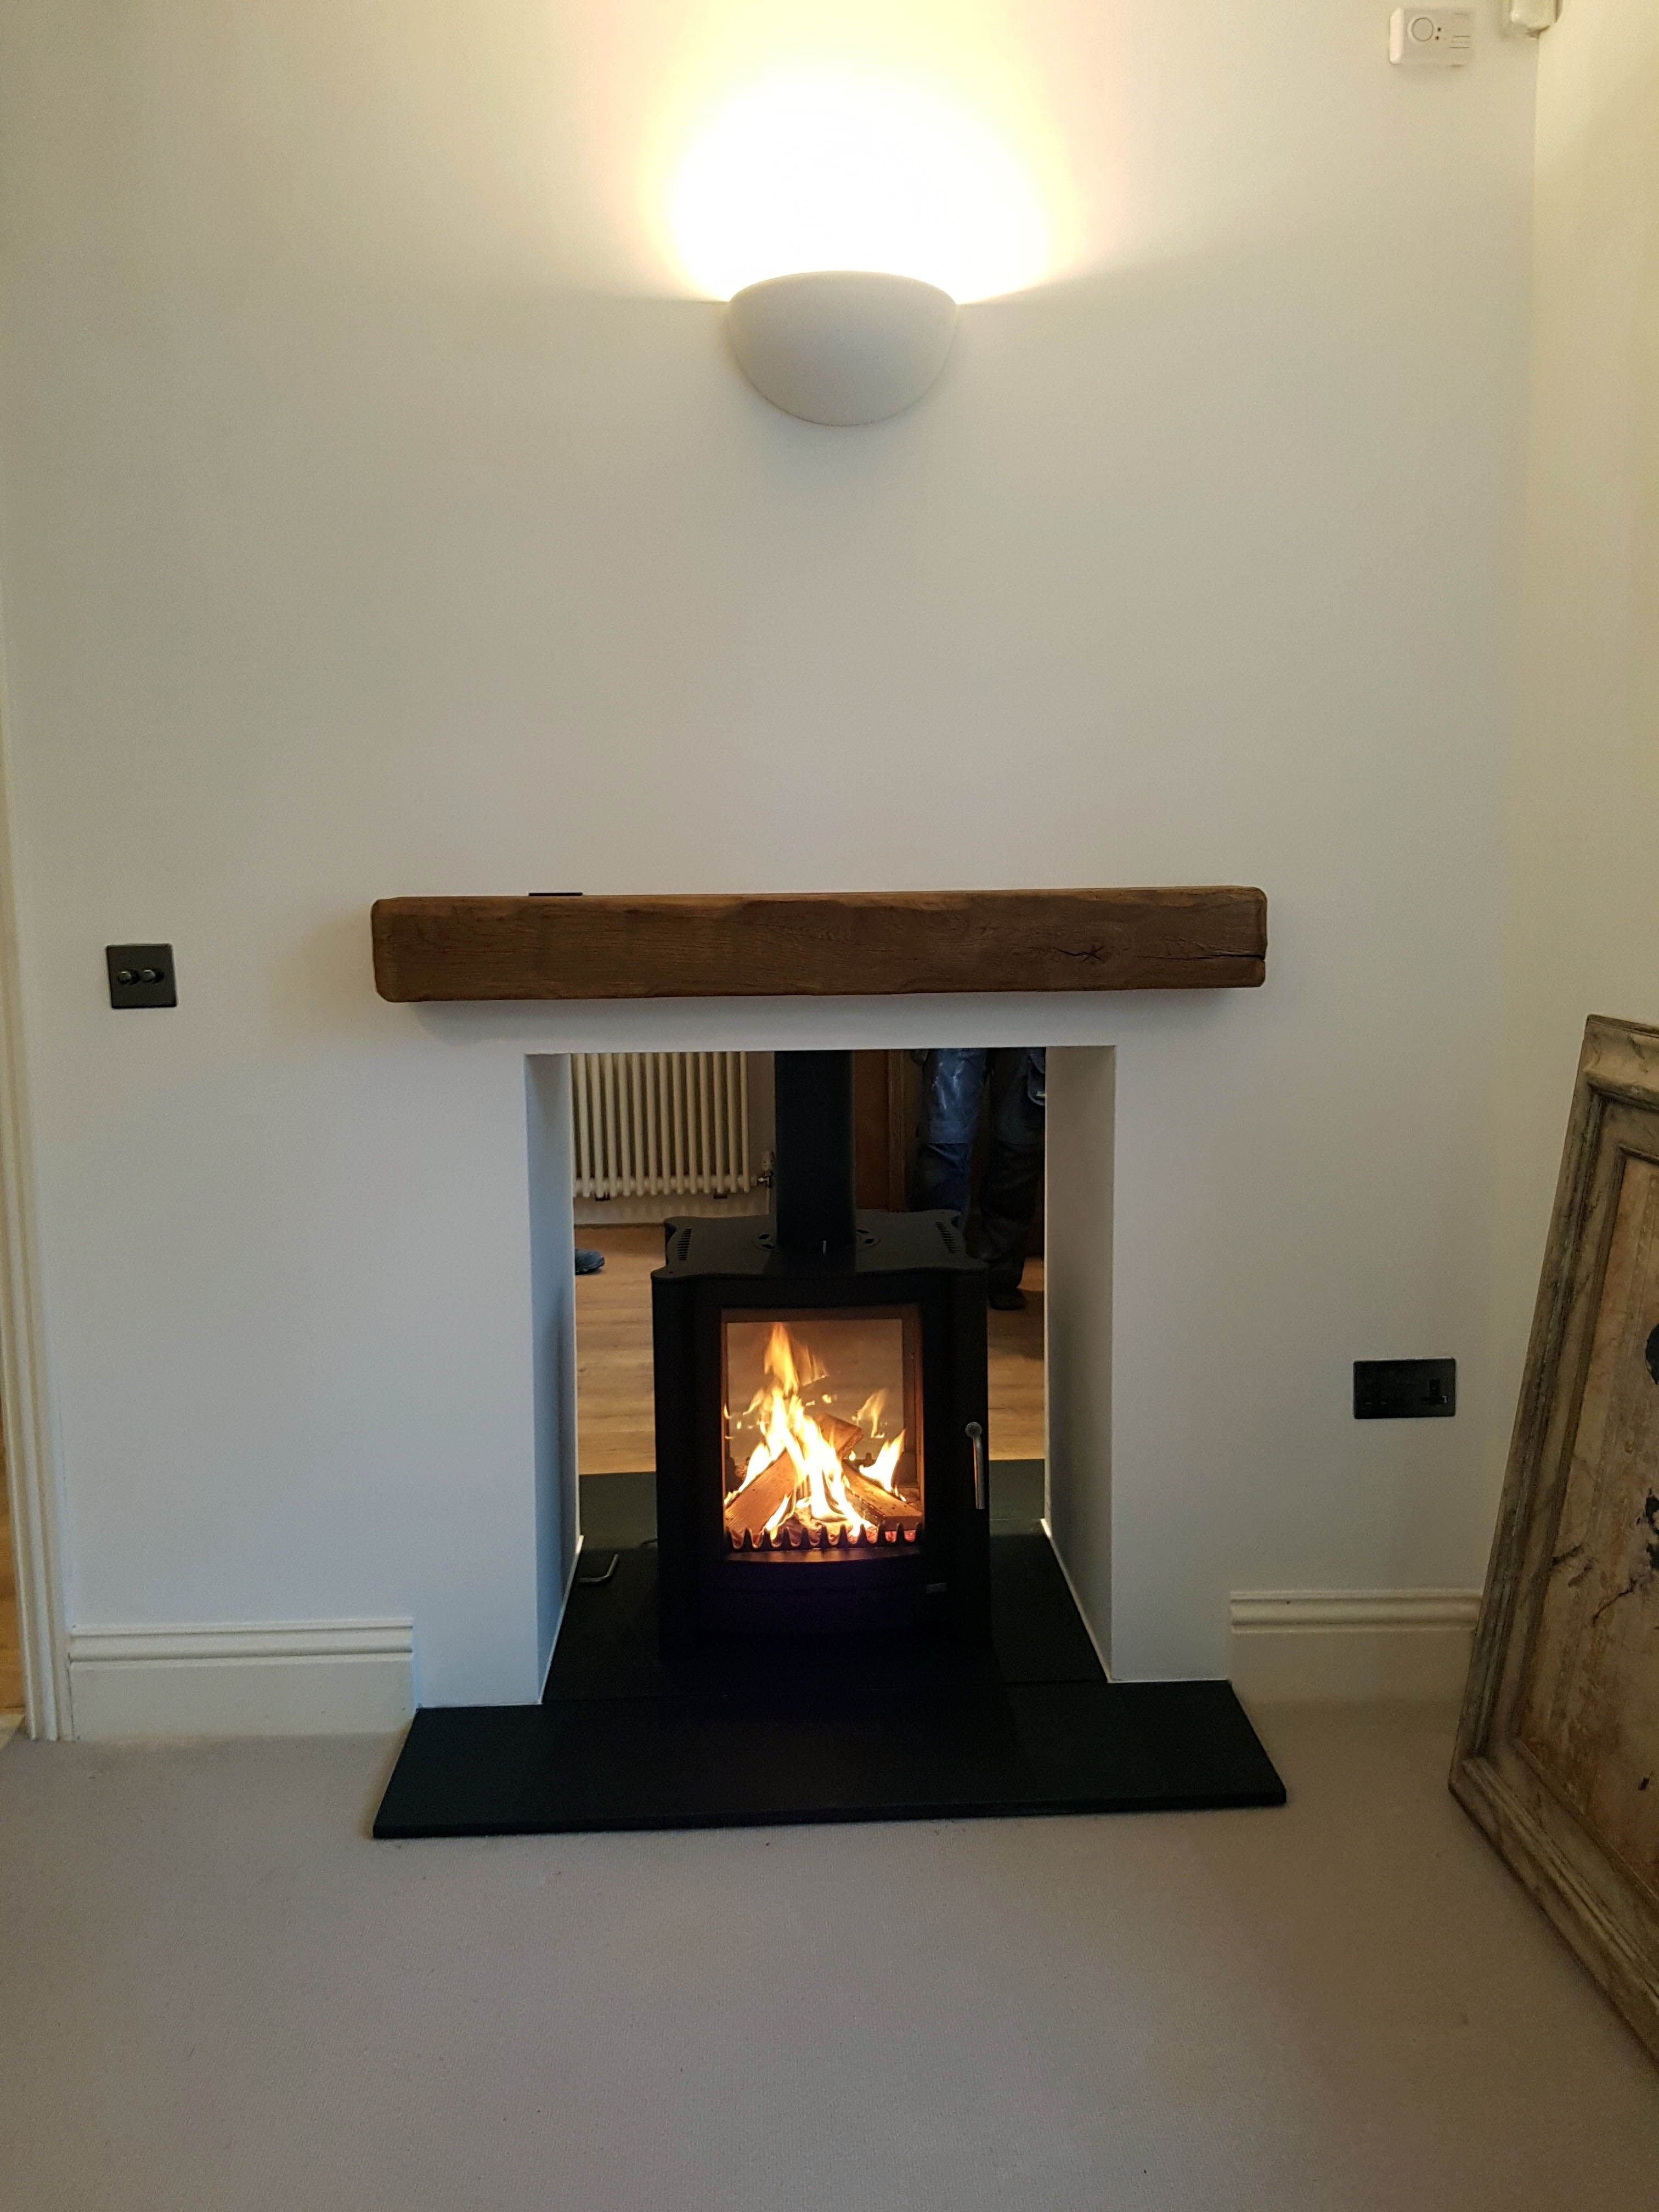 New Double Sided Ethanol Fireplace Exclusive On Smart Home Decor Fireplace Double Sided Fireplace Wood Burner Fireplace